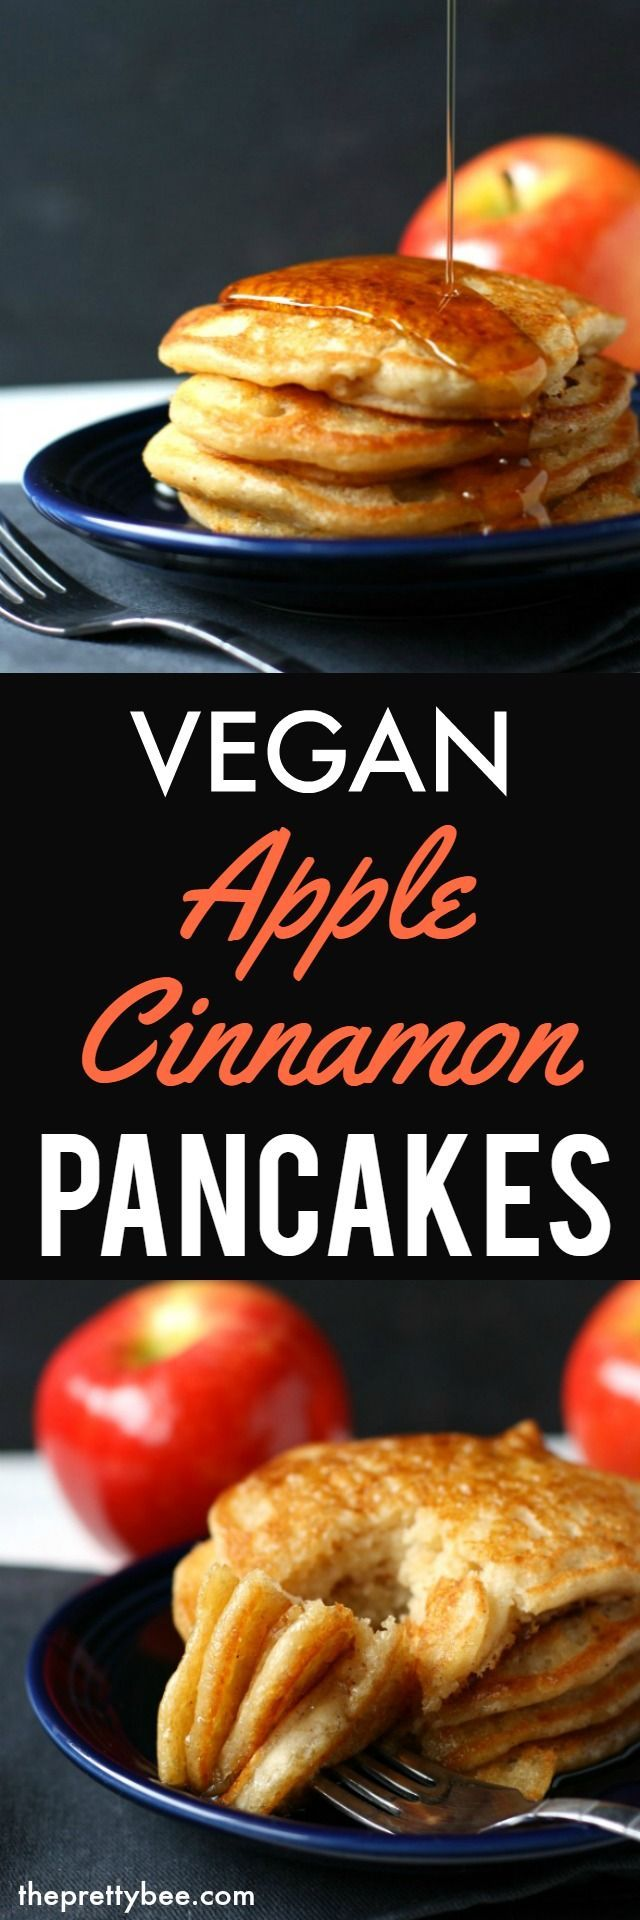 These vegan apple cinnamon pancakes are so light and delicious, just right for a weekend breakfast!